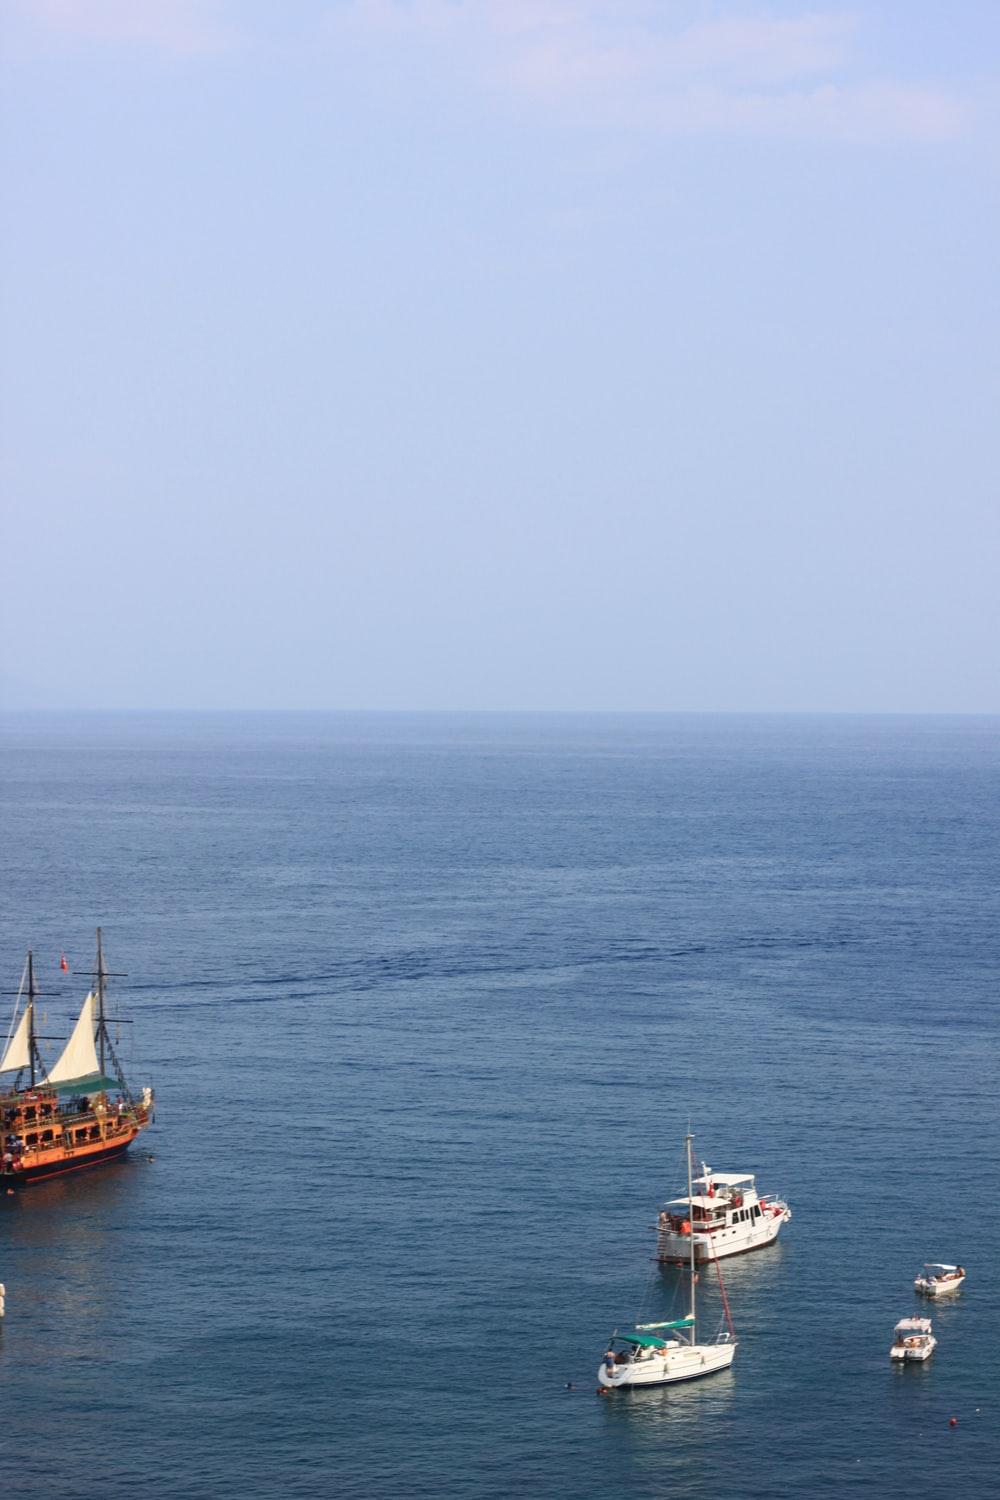 brown and white ship on sea during daytime